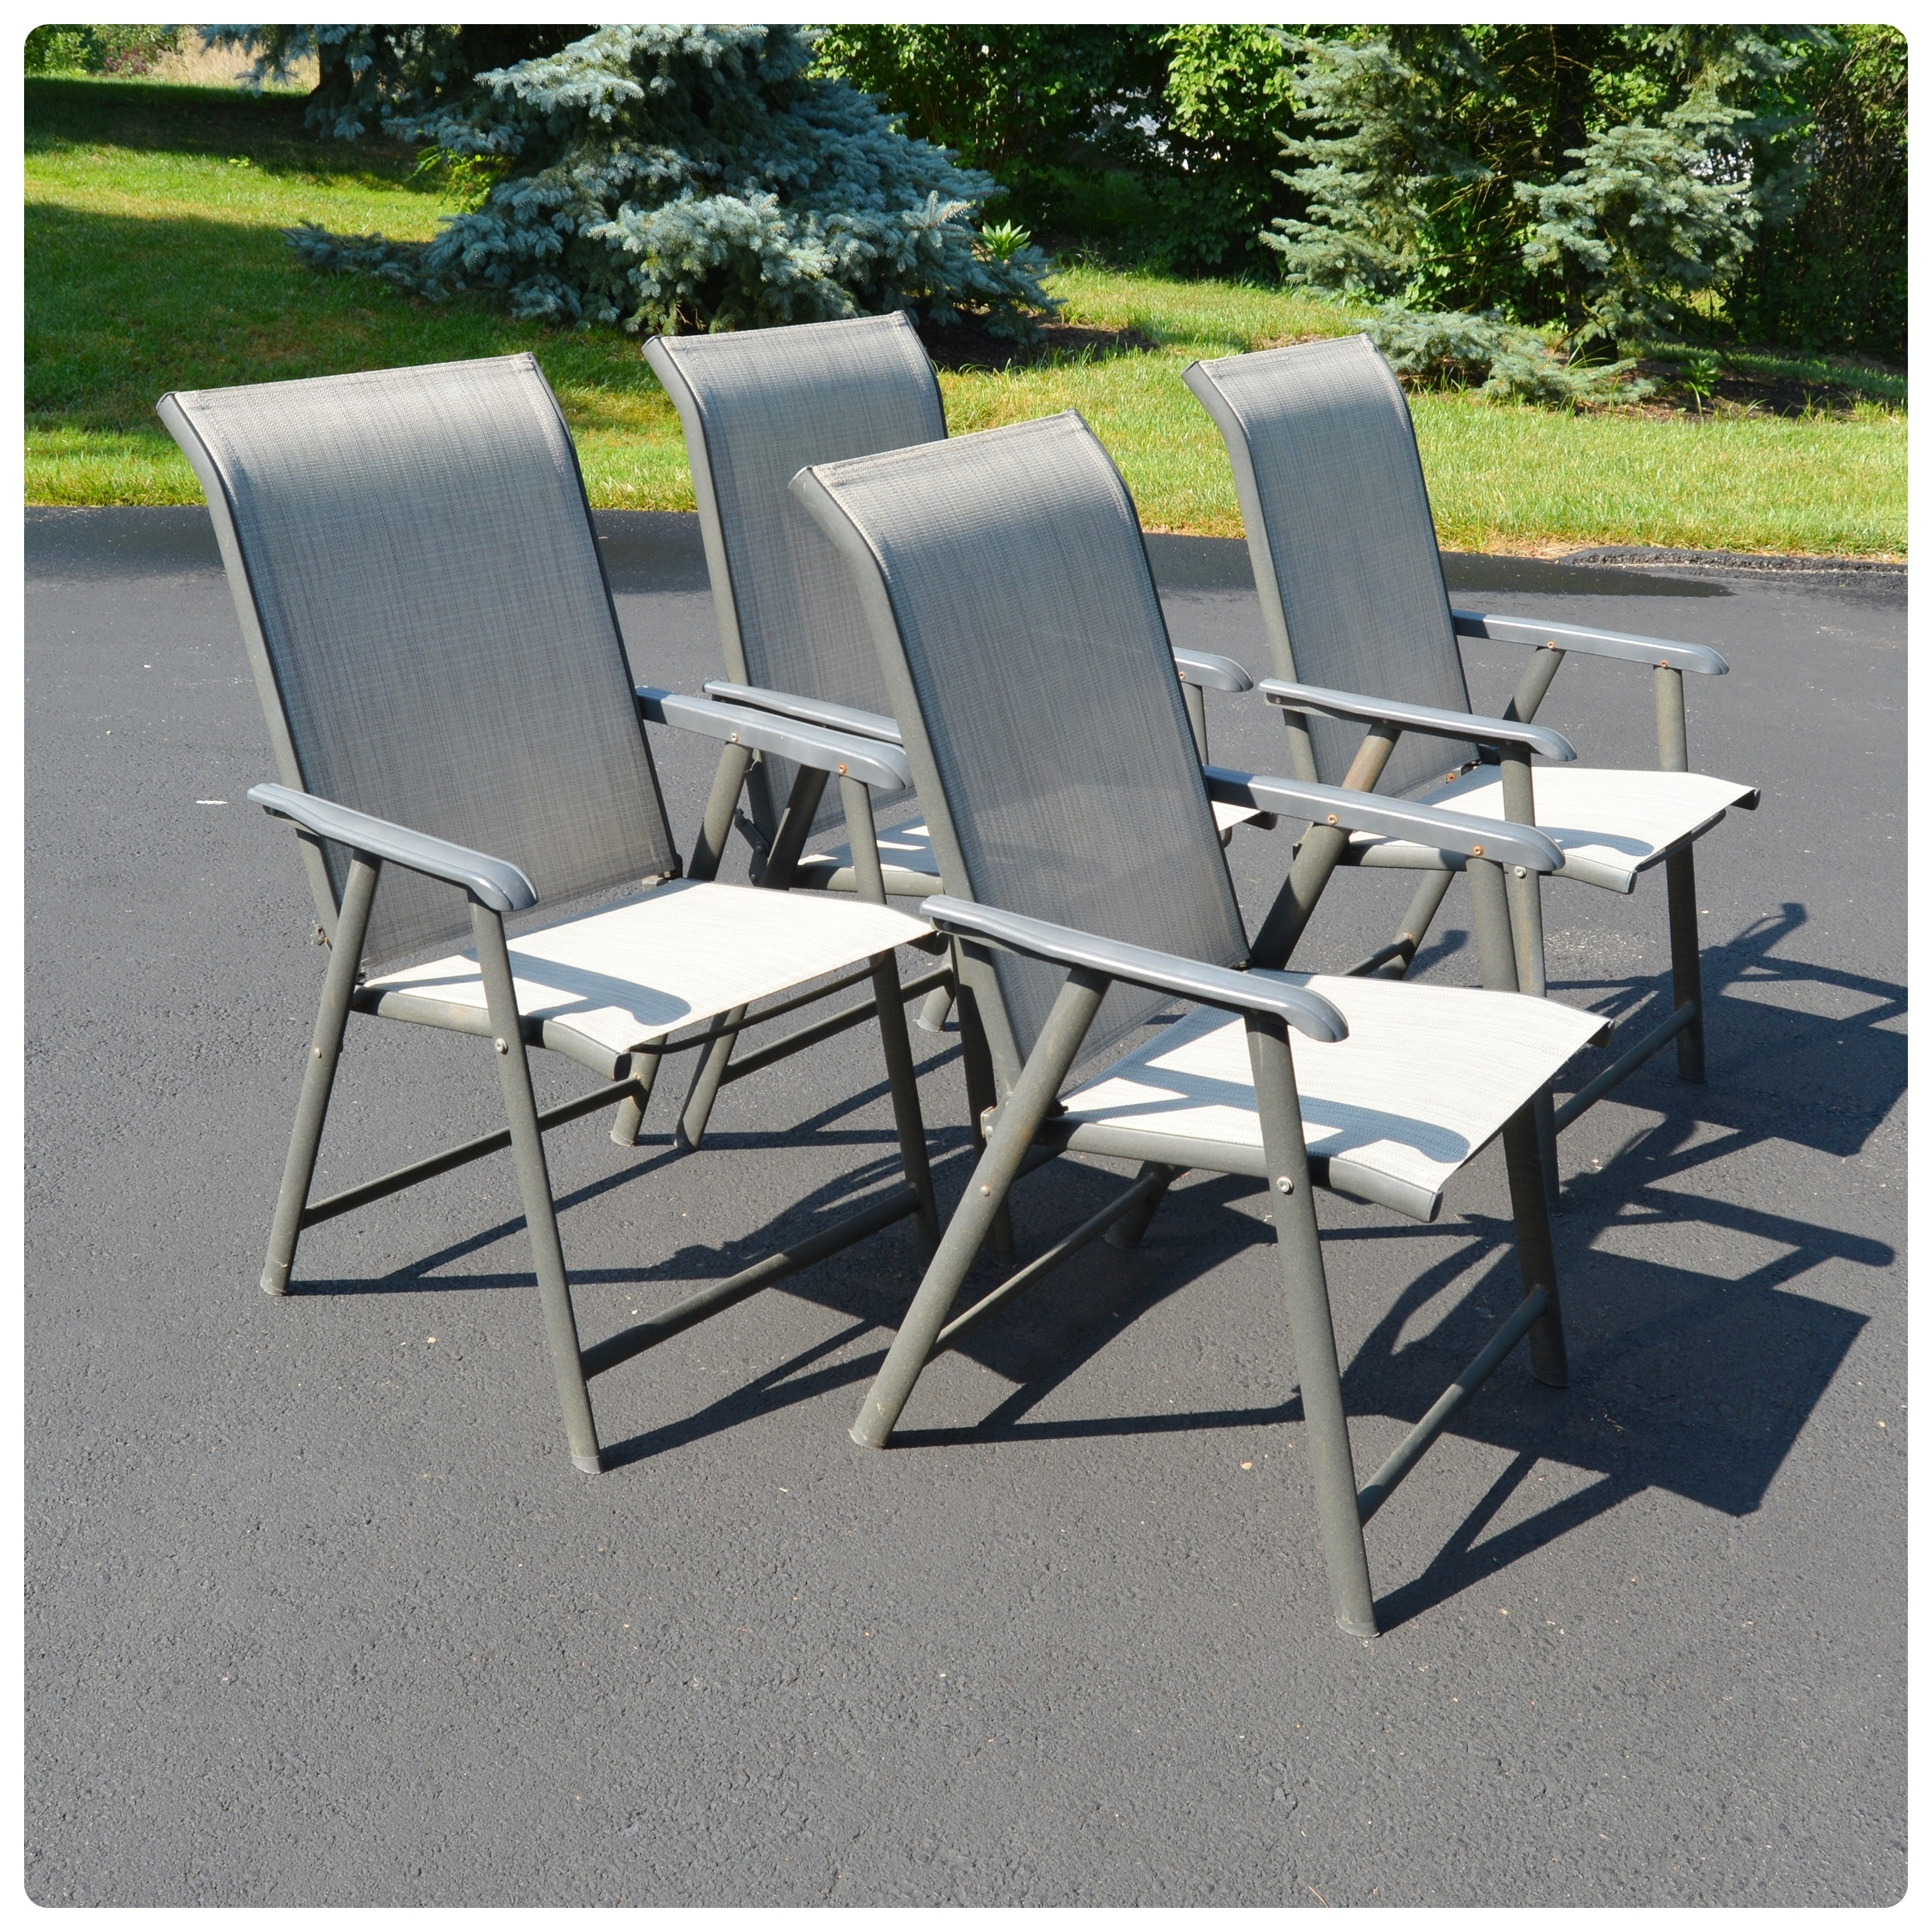 Four Folding Sling Back Patio Chairs